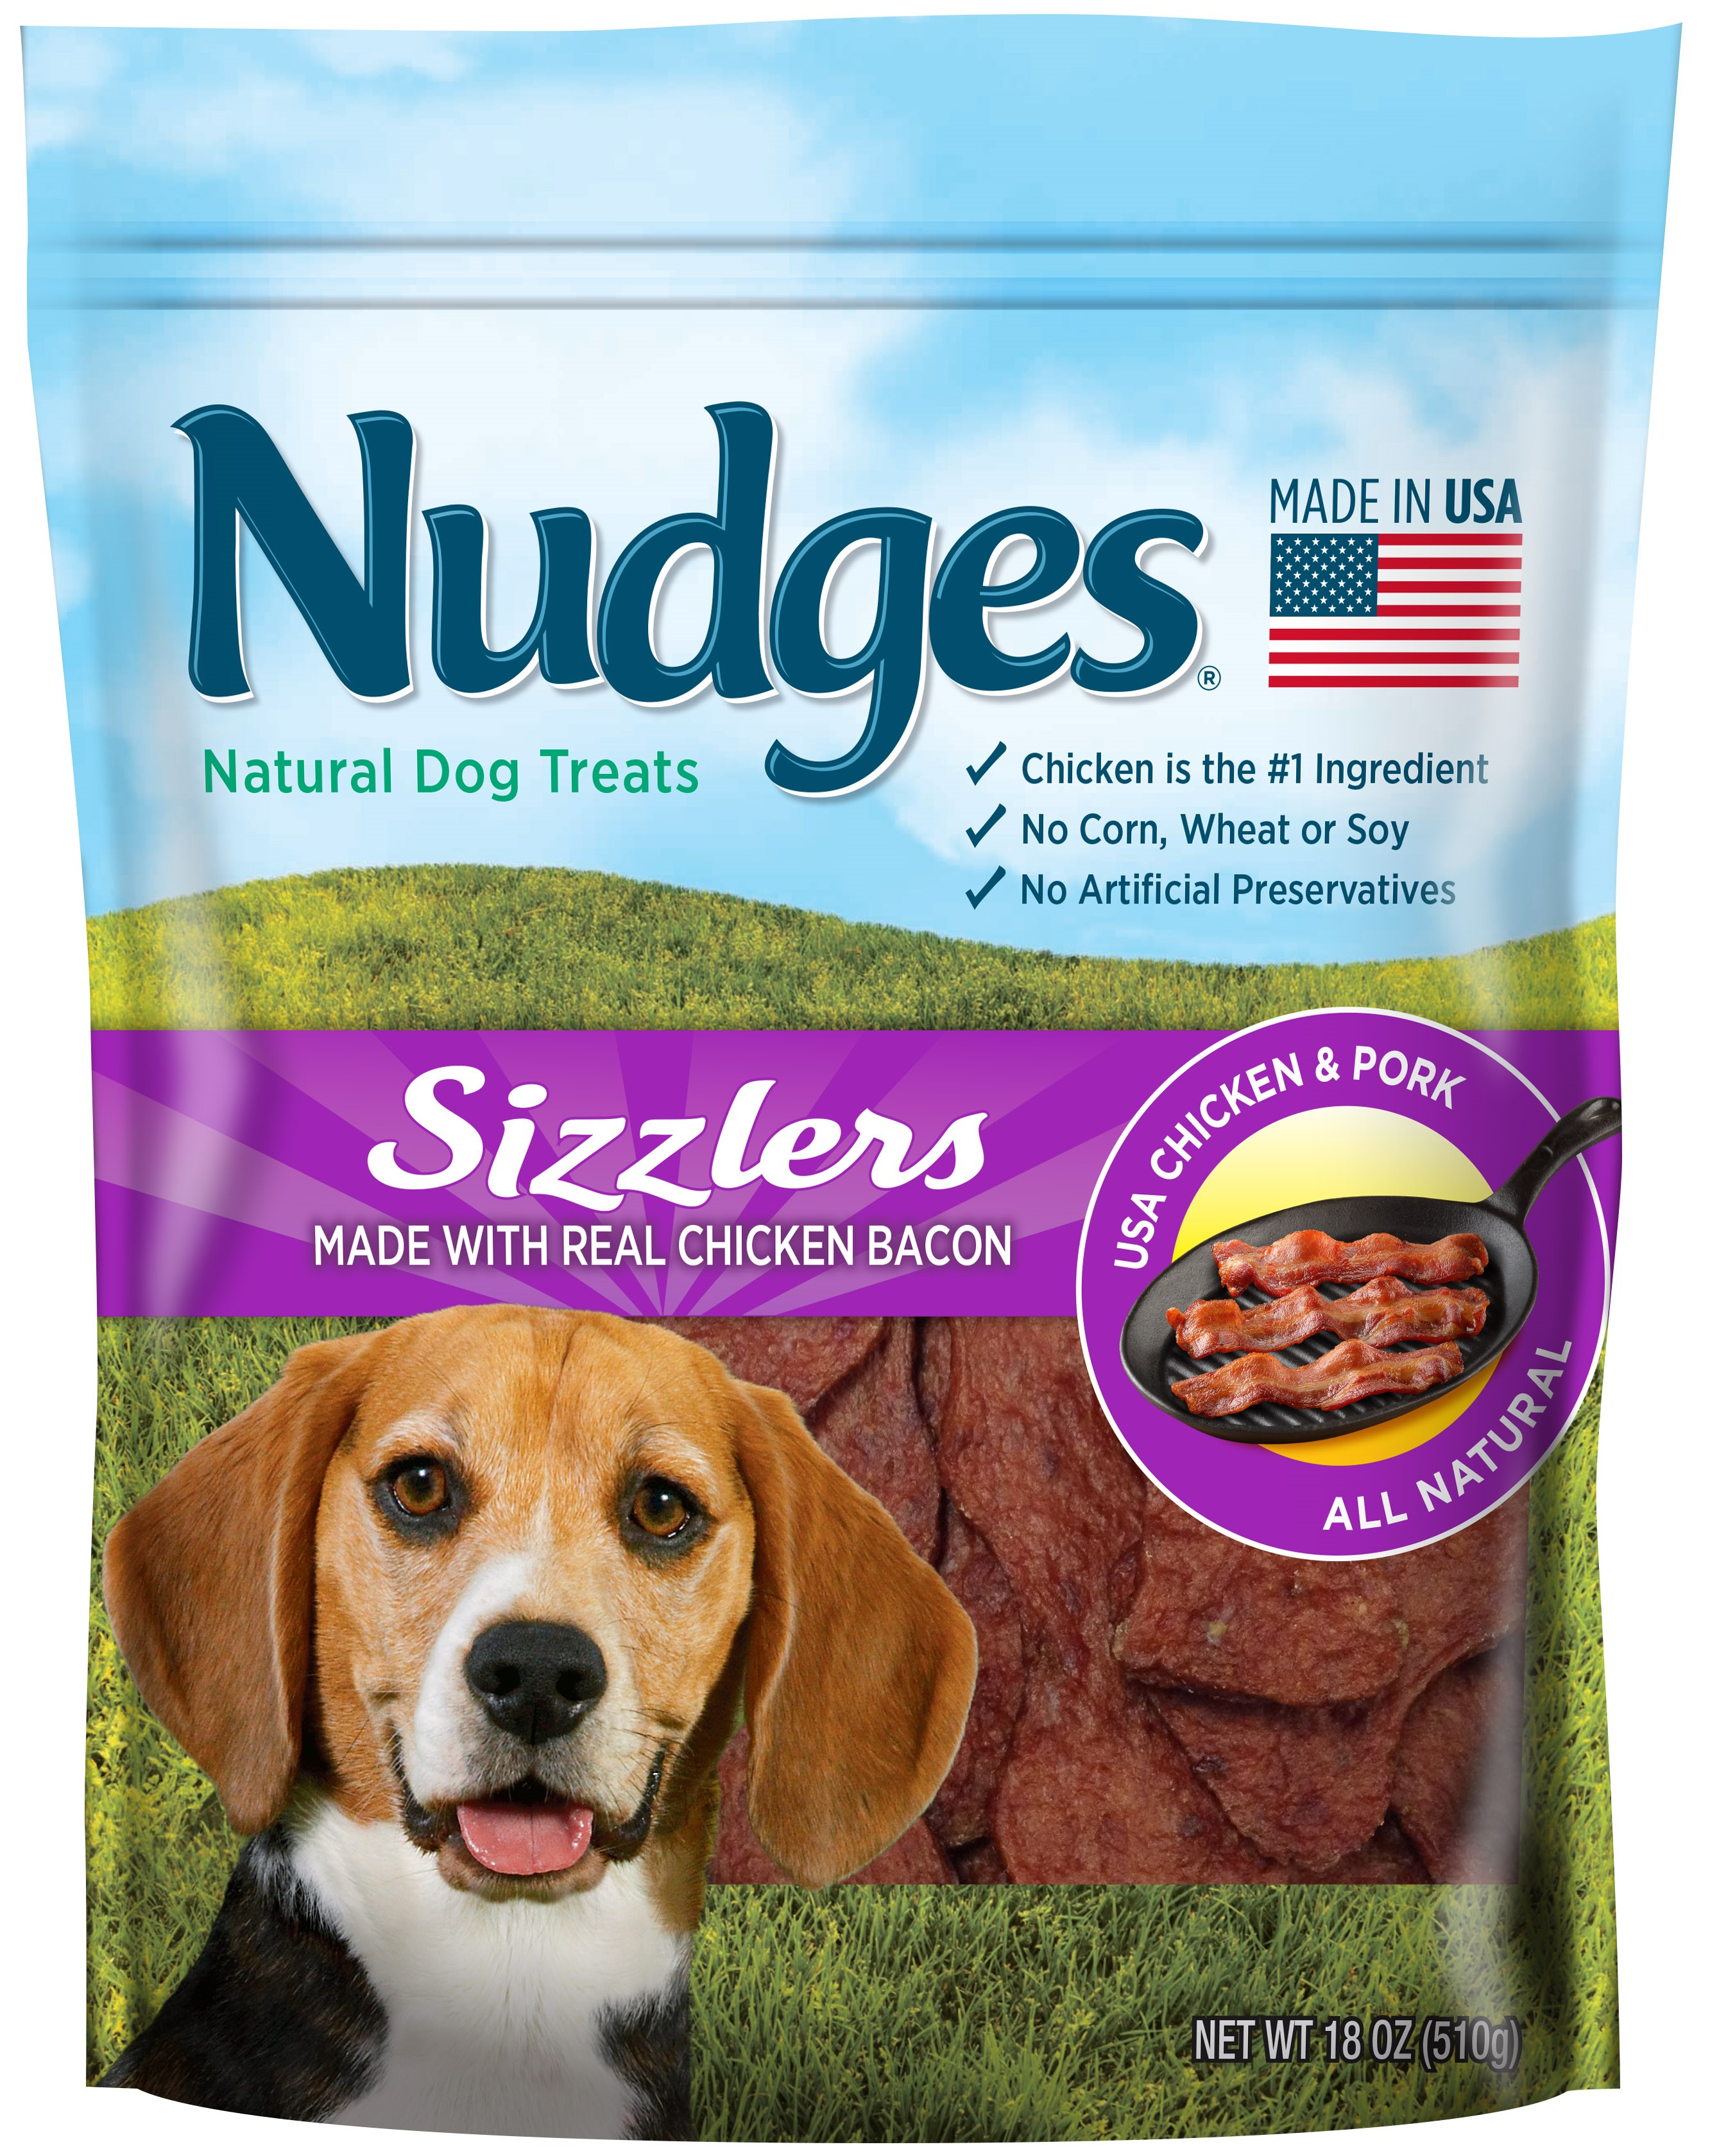 Nudges Homestyle with Real Chicken Bacon Dog Treats, 16 oz. by Tyson Pet Products, Inc.